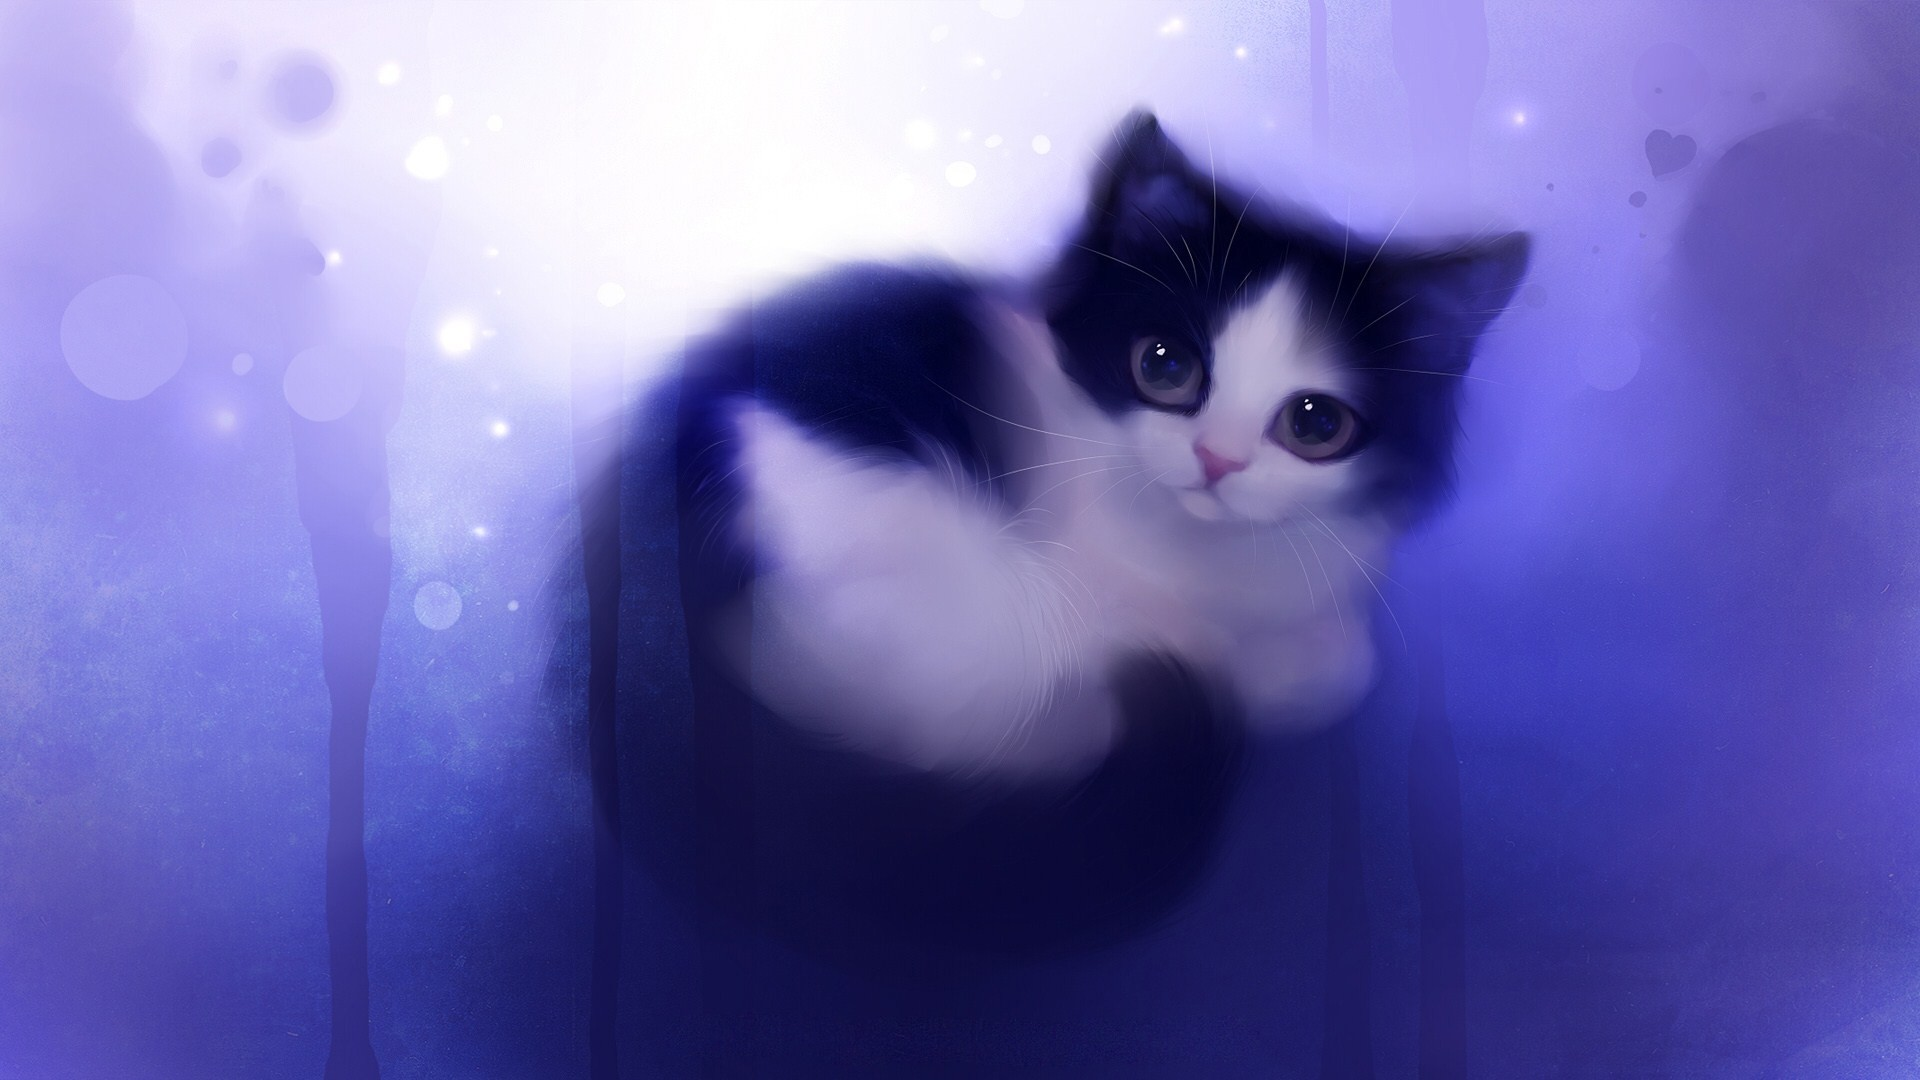 1920x1080 adorable cat wallpaper cute wallpaper share this cute wallpaper on .